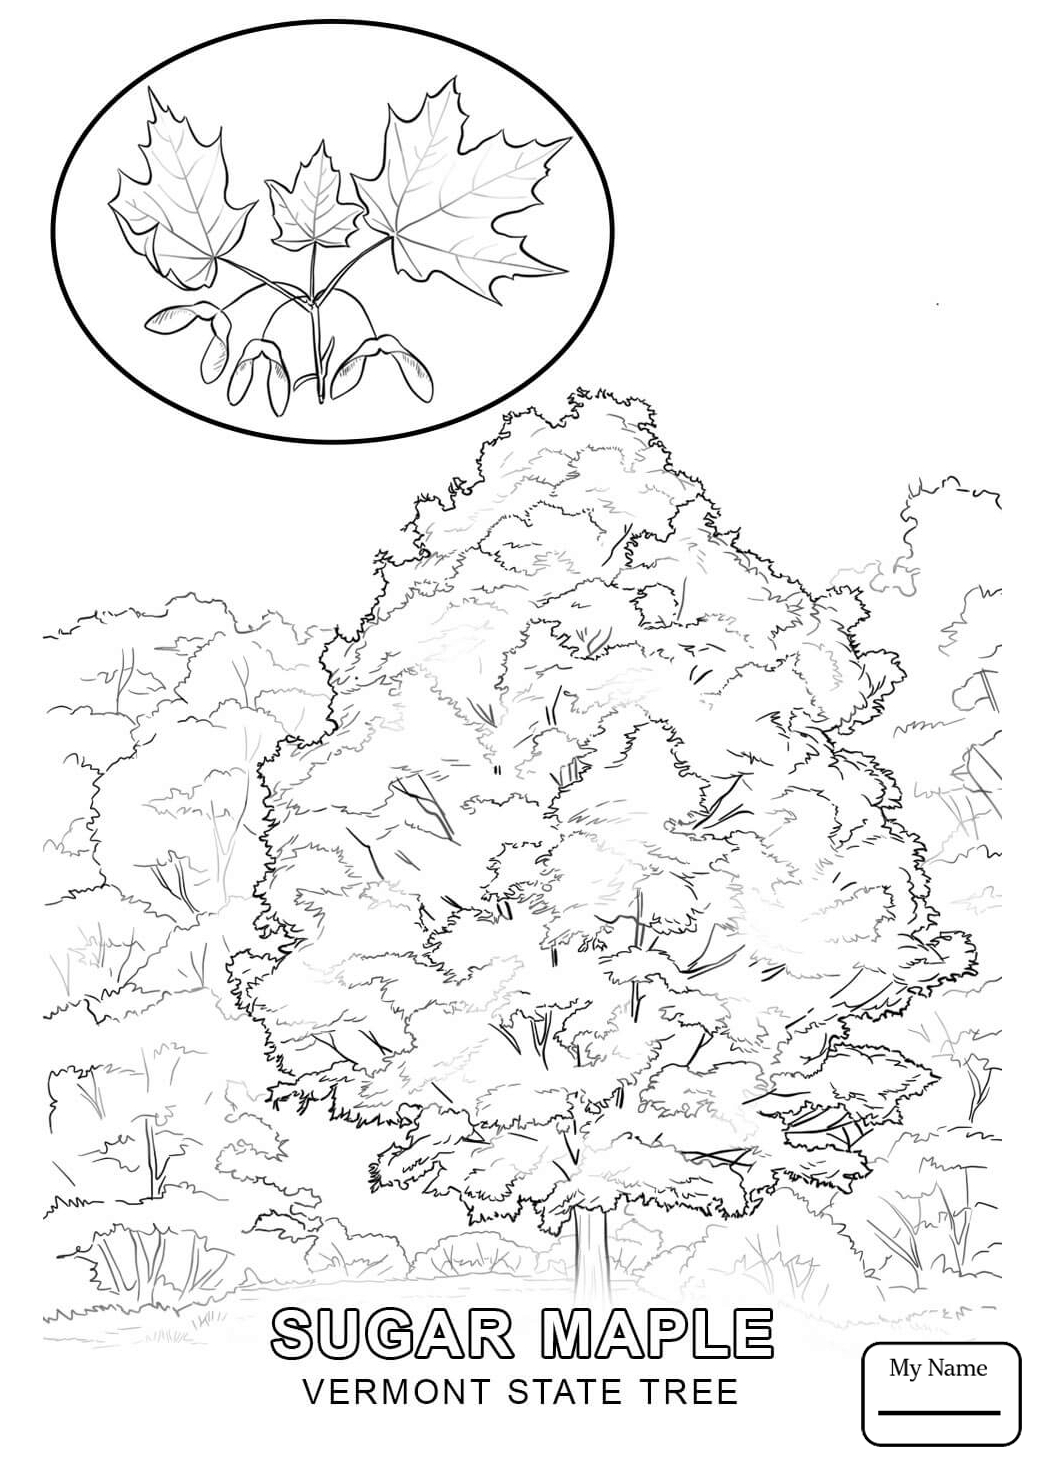 vermont state flag coloring page vermont state outline coloring sheet the us50 state vermont coloring flag page state